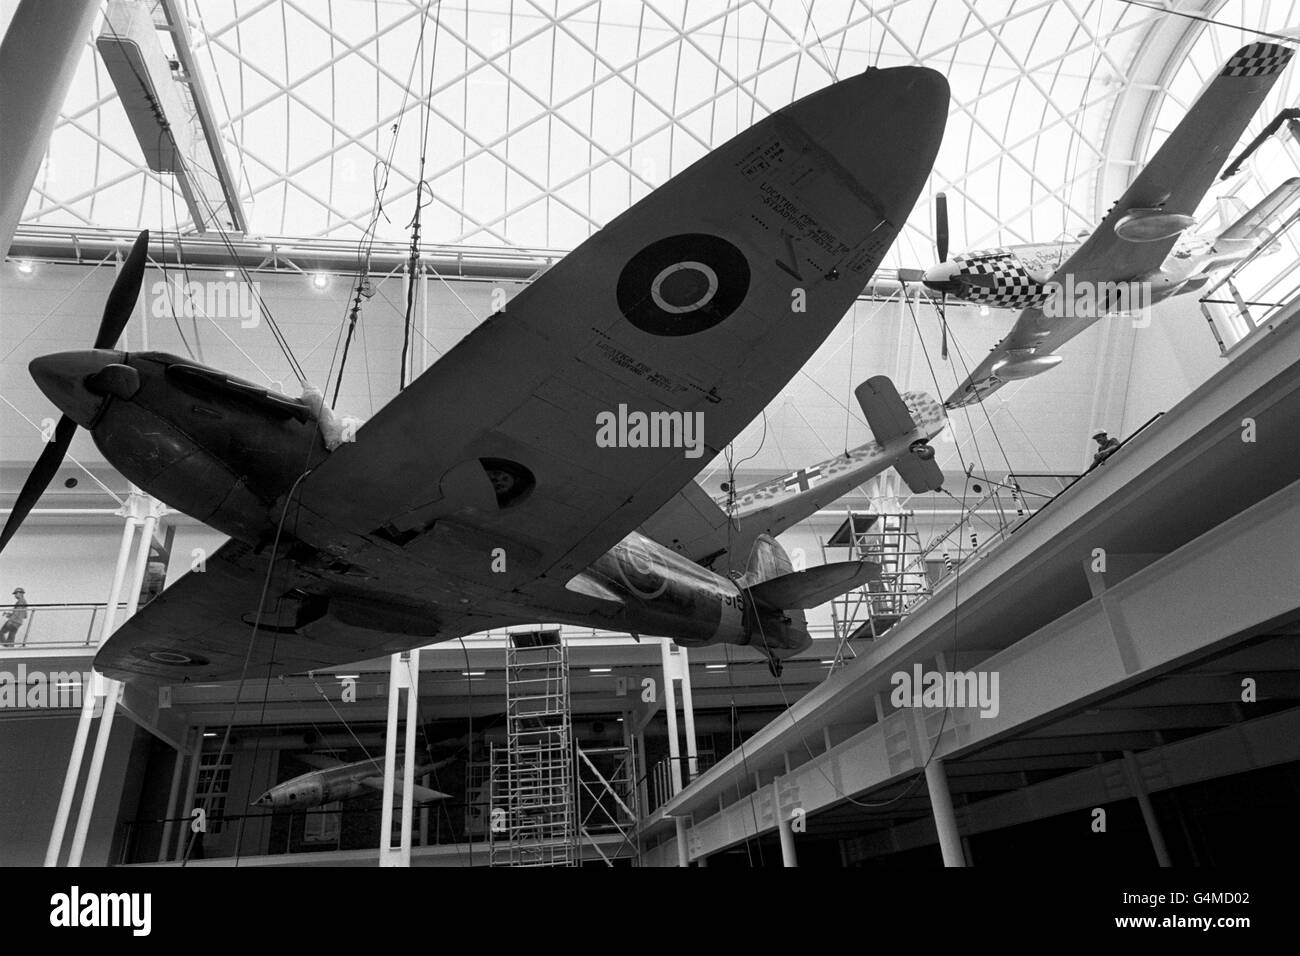 Leisure and Tourism - Imperial War Museum - London - Stock Image